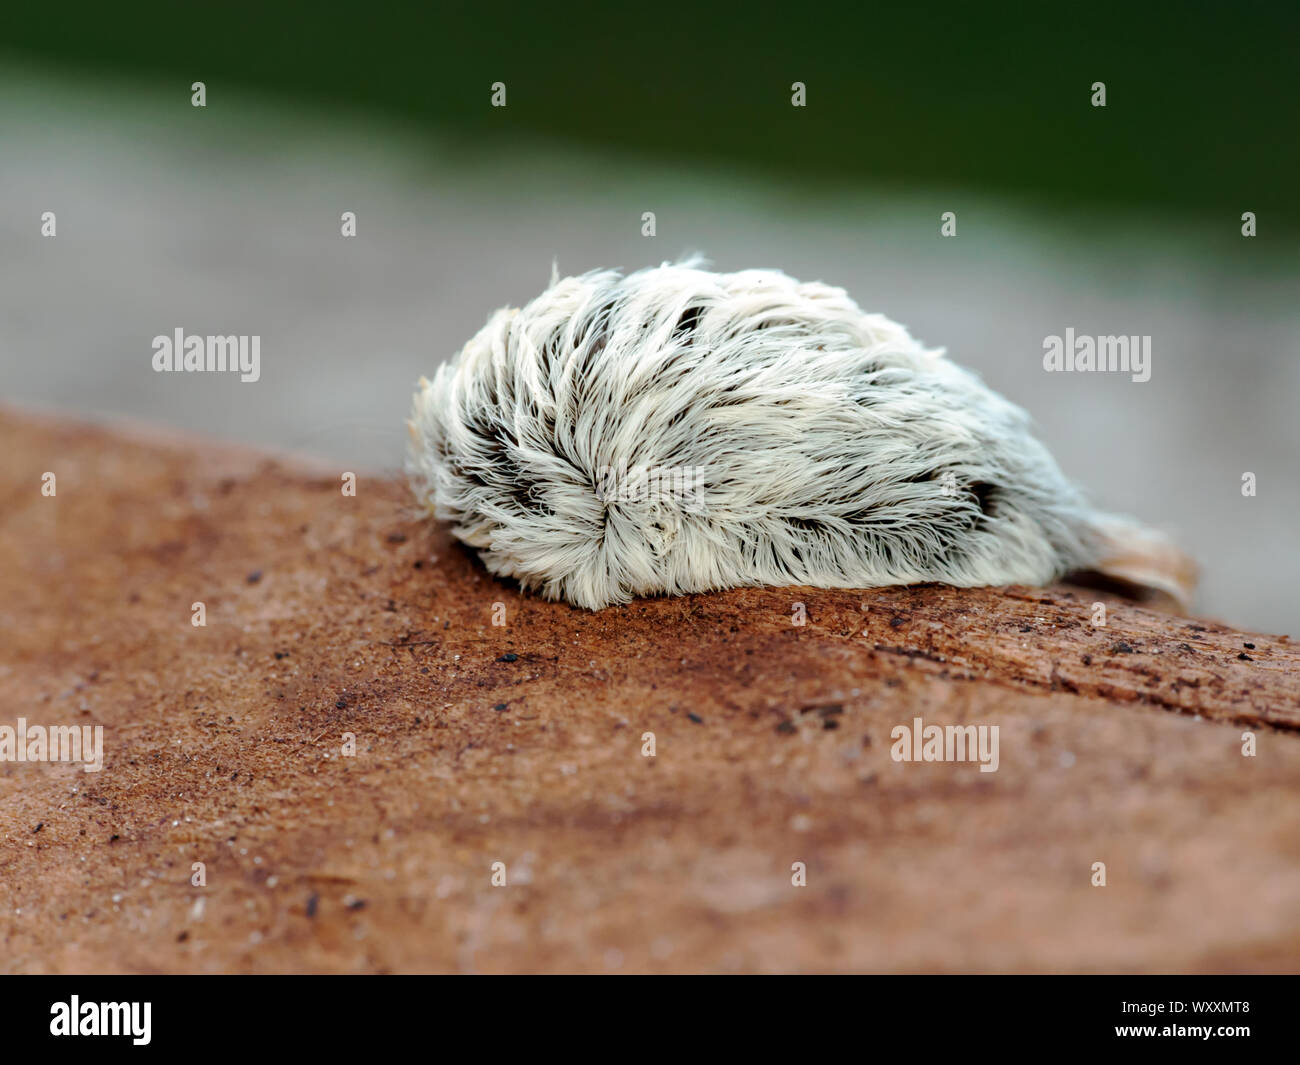 macro-shot-of-a-megalopyge-opercularis-caterpillar-the-venomous-larval-form-of-the-southern-flannel-moth-WXXMT8.jpg